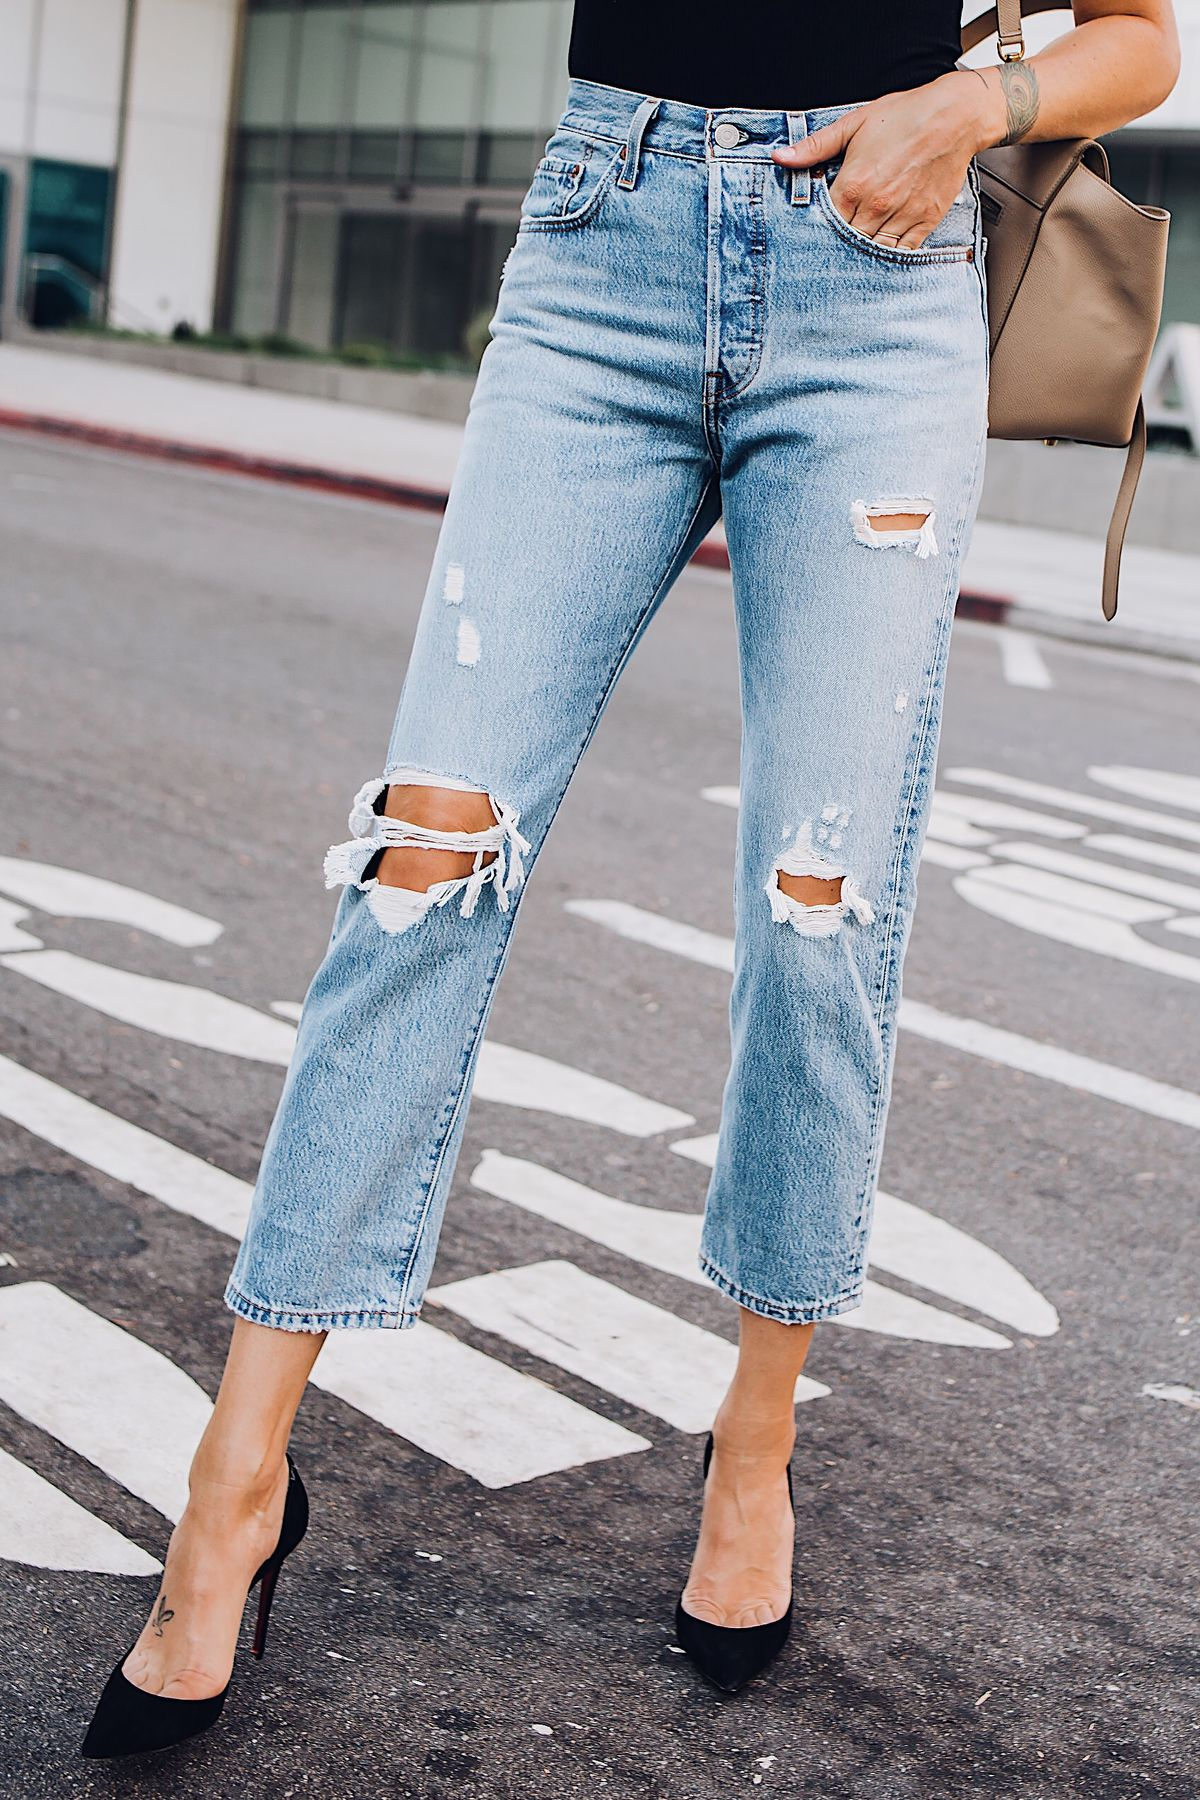 480a9d12971b Woman Wearing Levis Wedgie Straight Leg Ripped Jeans Black Pumps Fashion  Jackson San Diego Fashion Blogger Street Style